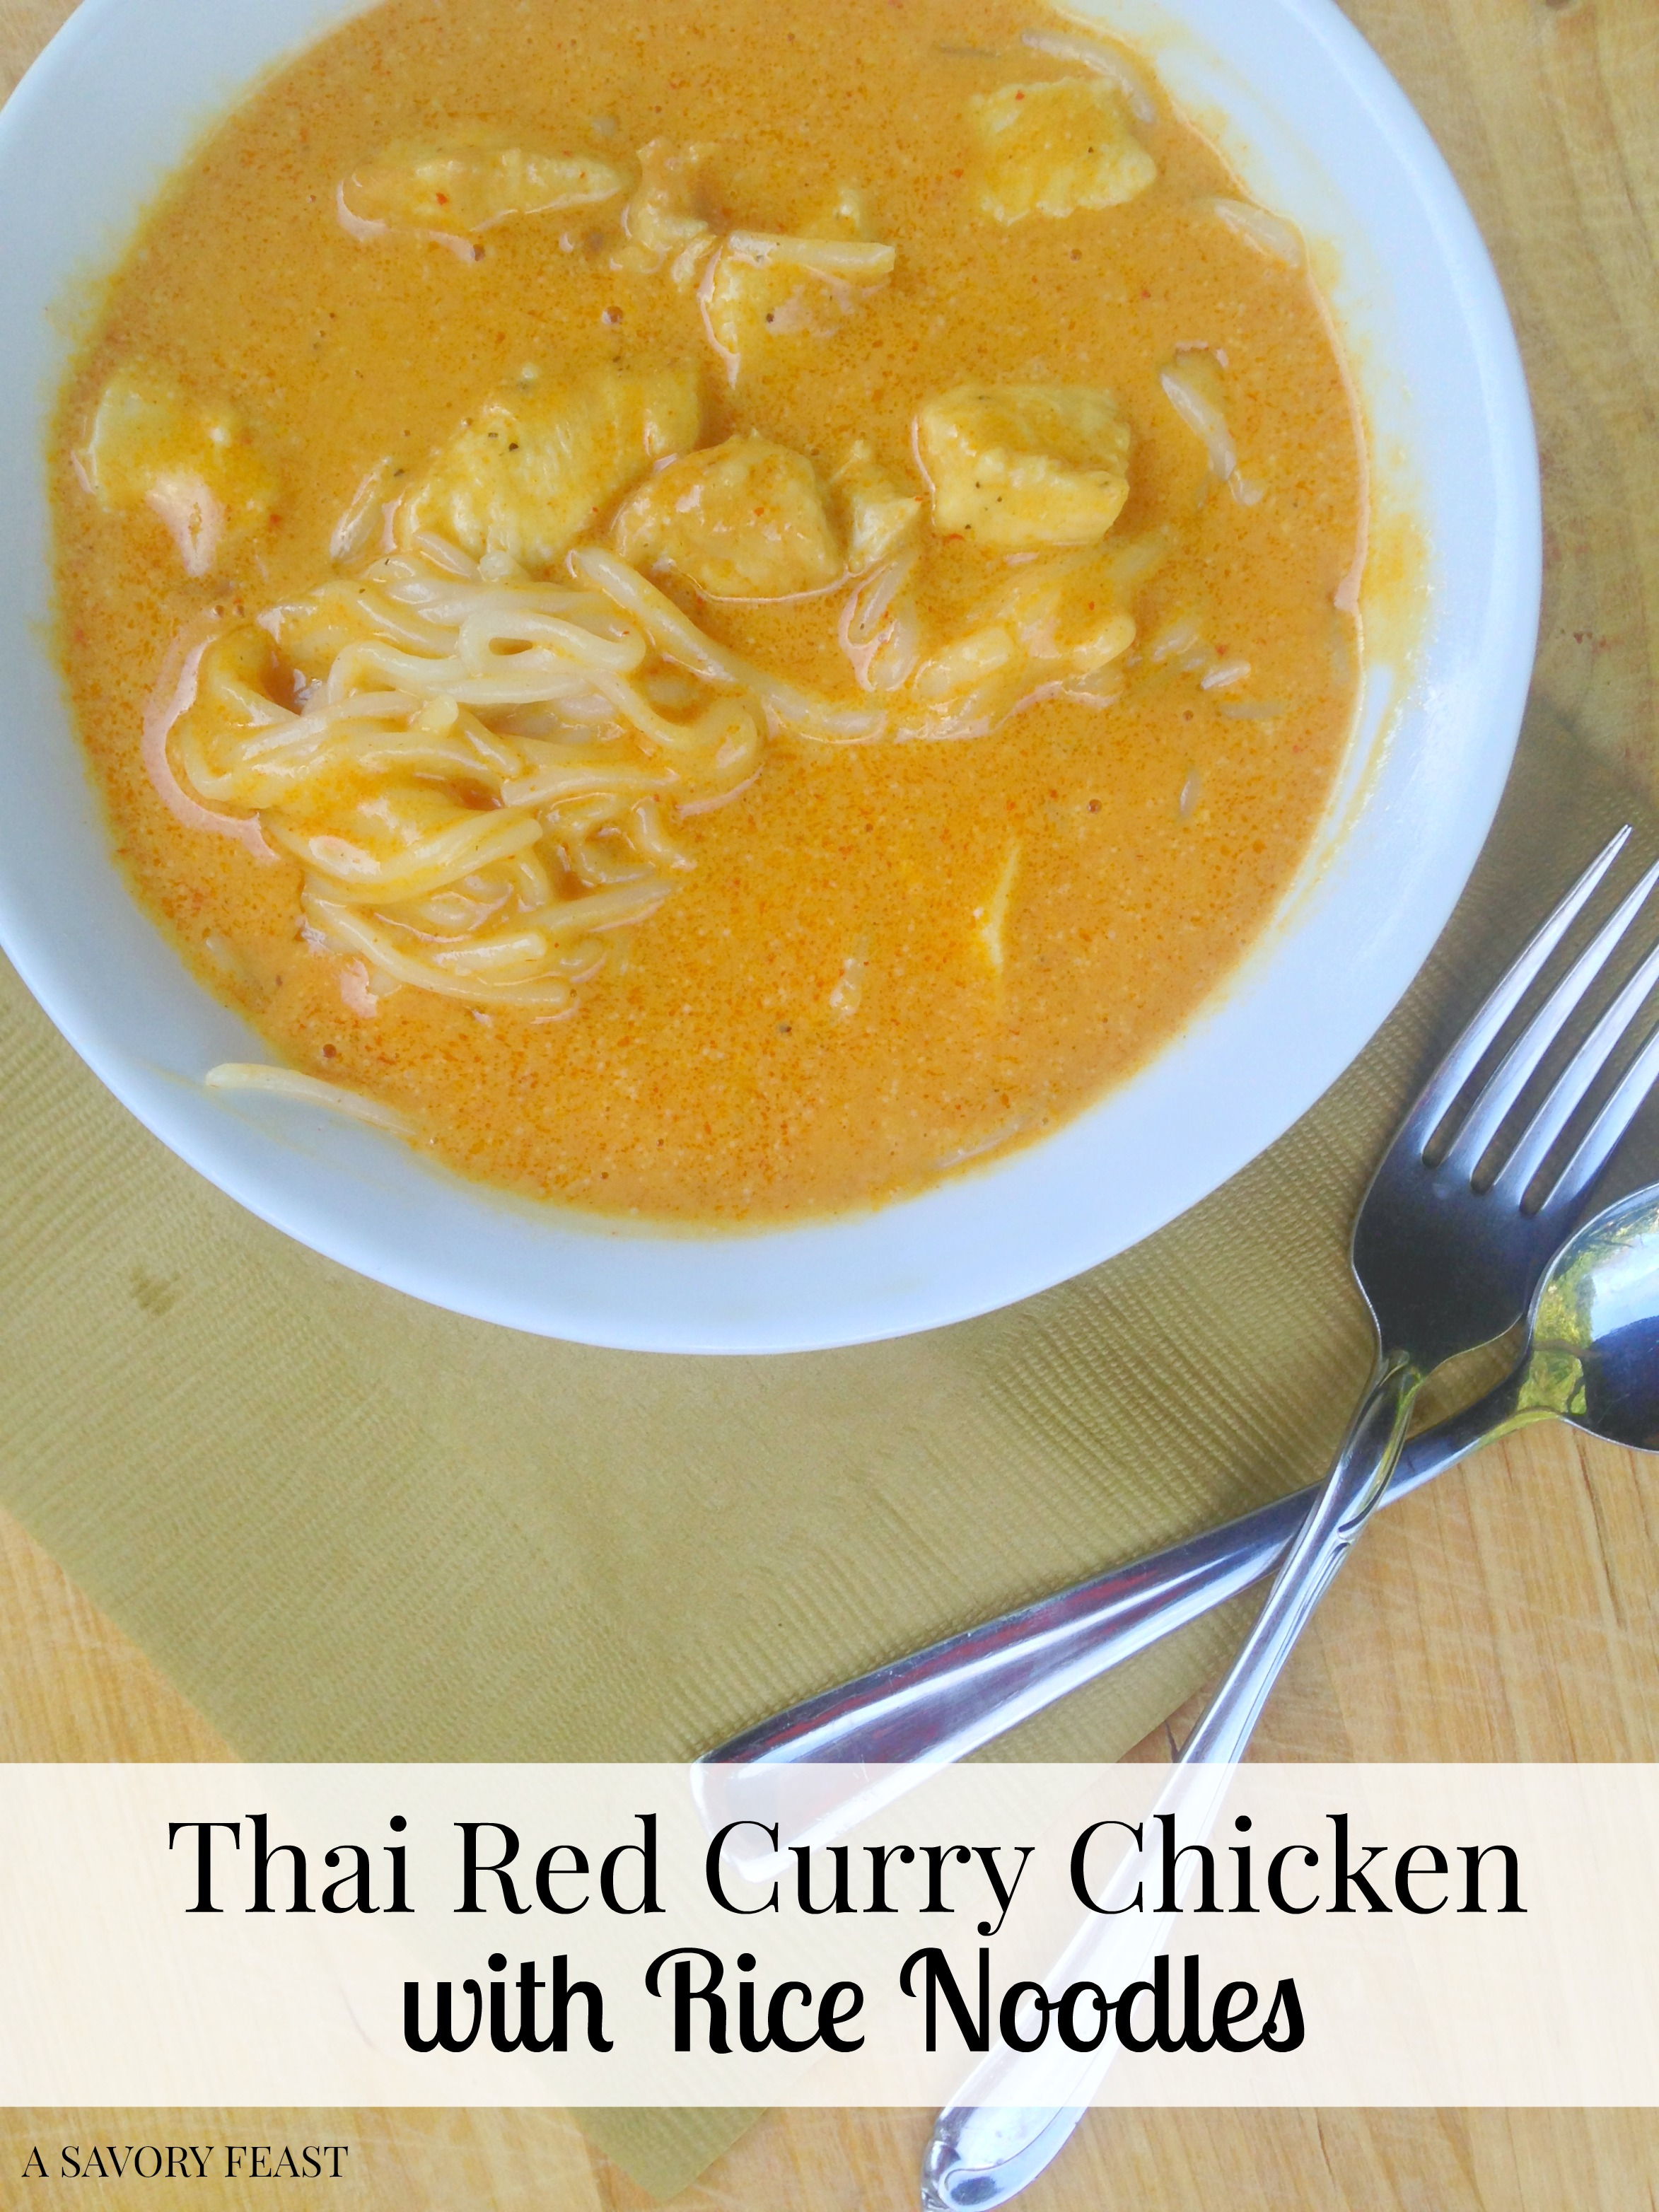 Easy recipe using 4 ingredients you can buy at Trader Joe's! Thai Red Curry Chicken with Rice Noodles